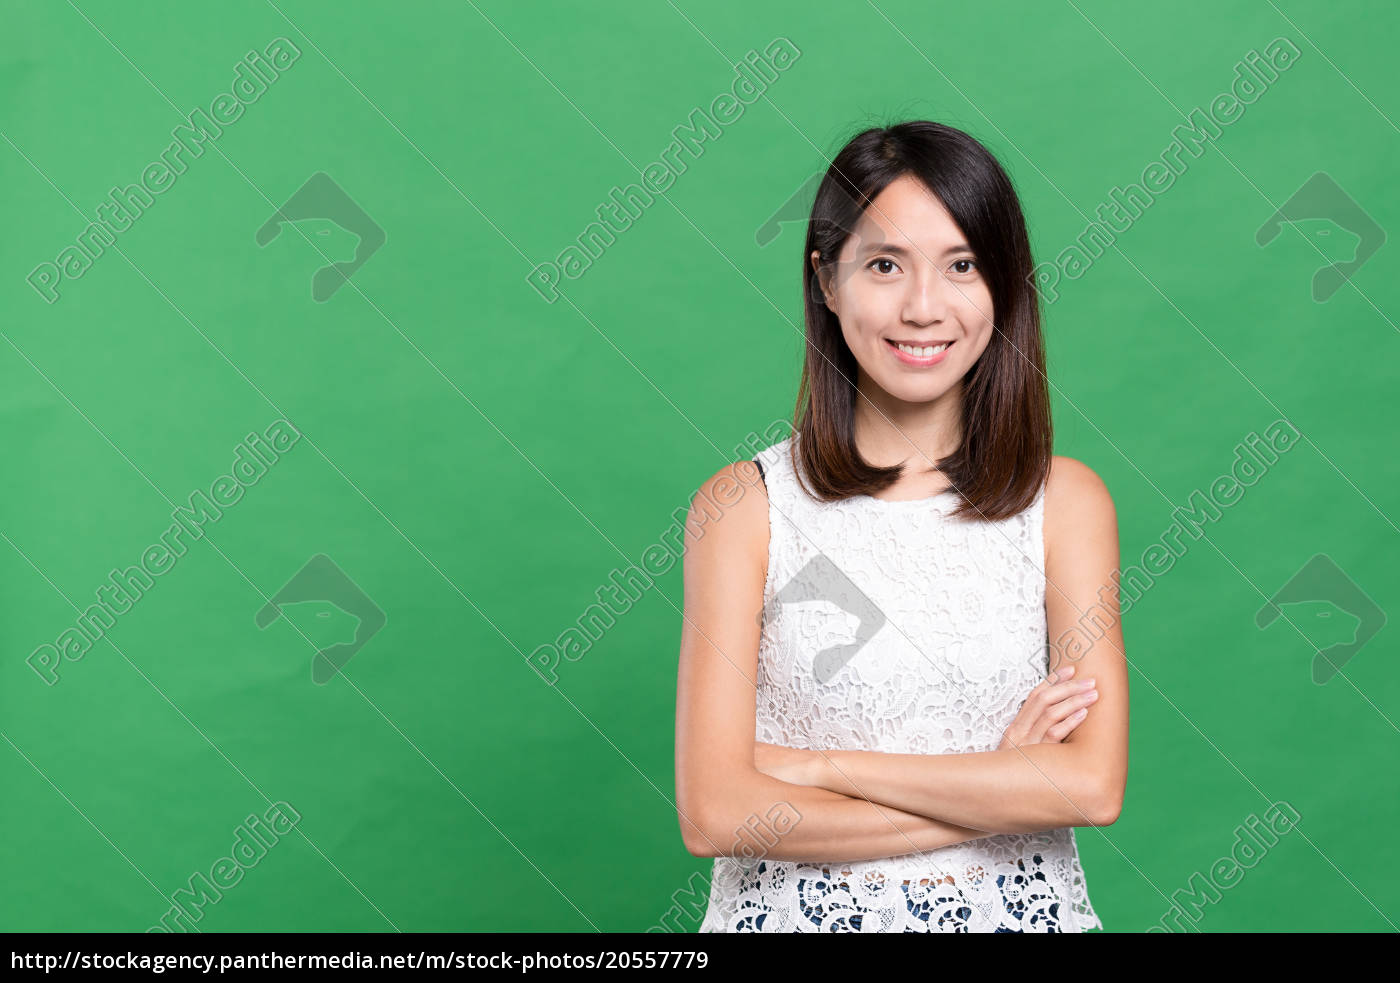 young, asian, woman, over, green, background - 20557779